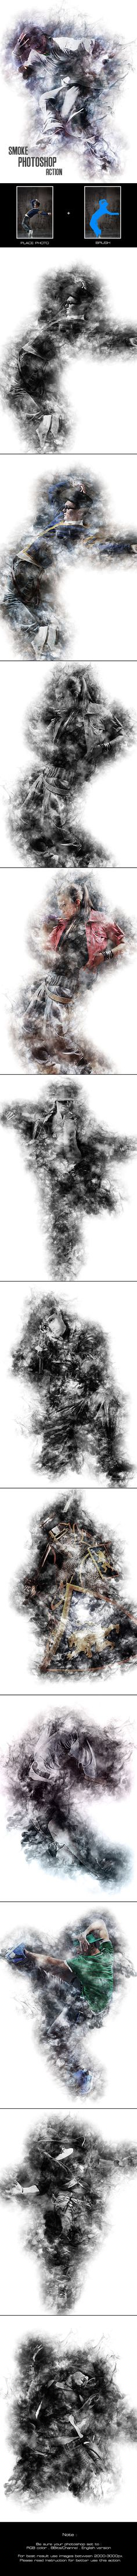 Smoke - Photoshop Action #photoeffect Download: http://graphicriver.net/item/smoke-photoshop-action/12875547?ref=ksioks